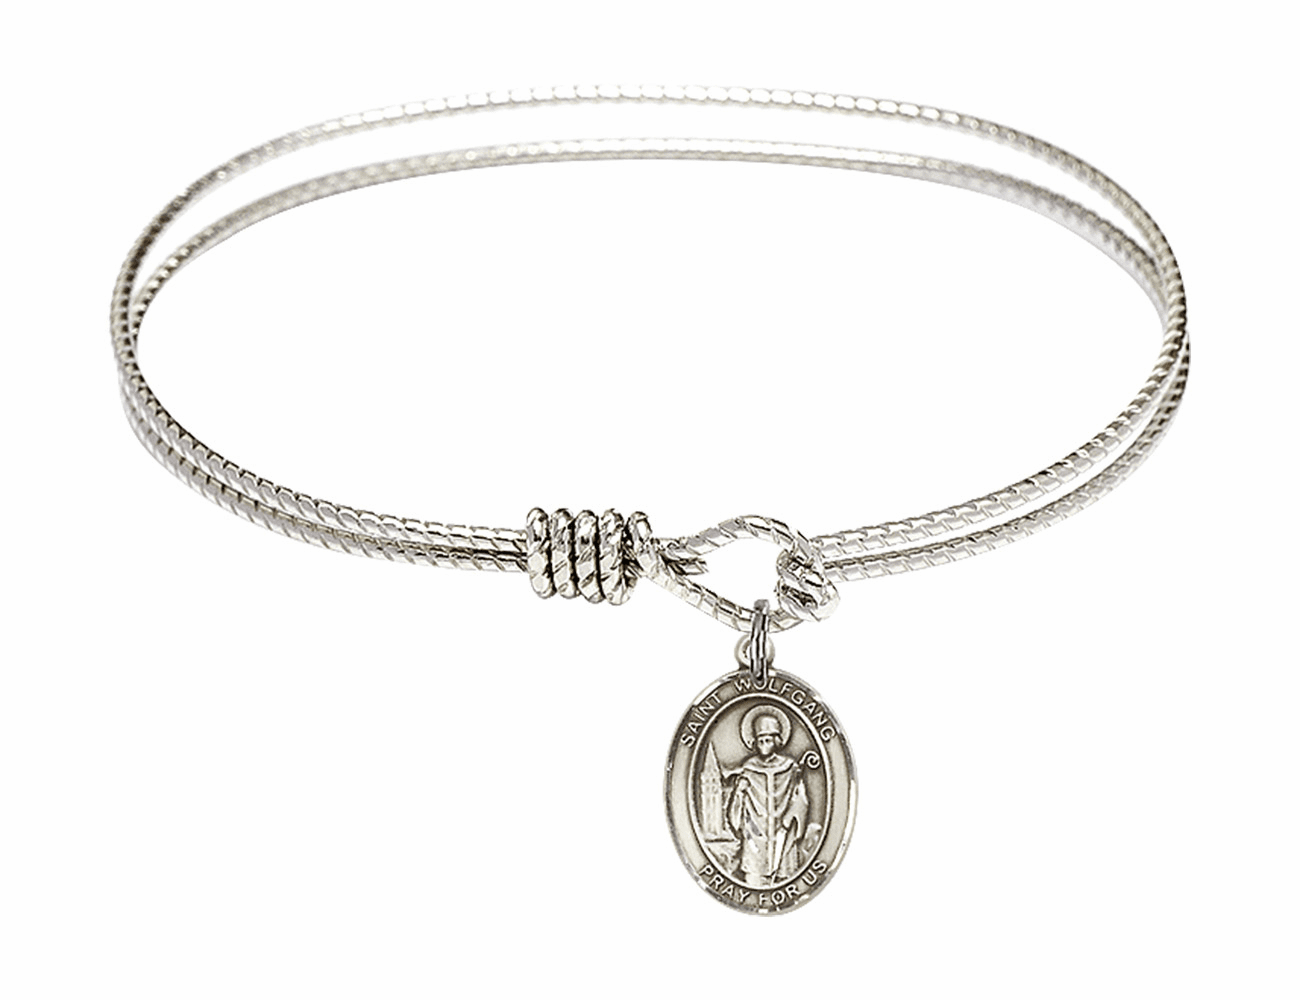 St Wolfgang Textured Bangle w/Sterling Charm Bracelet by Bliss